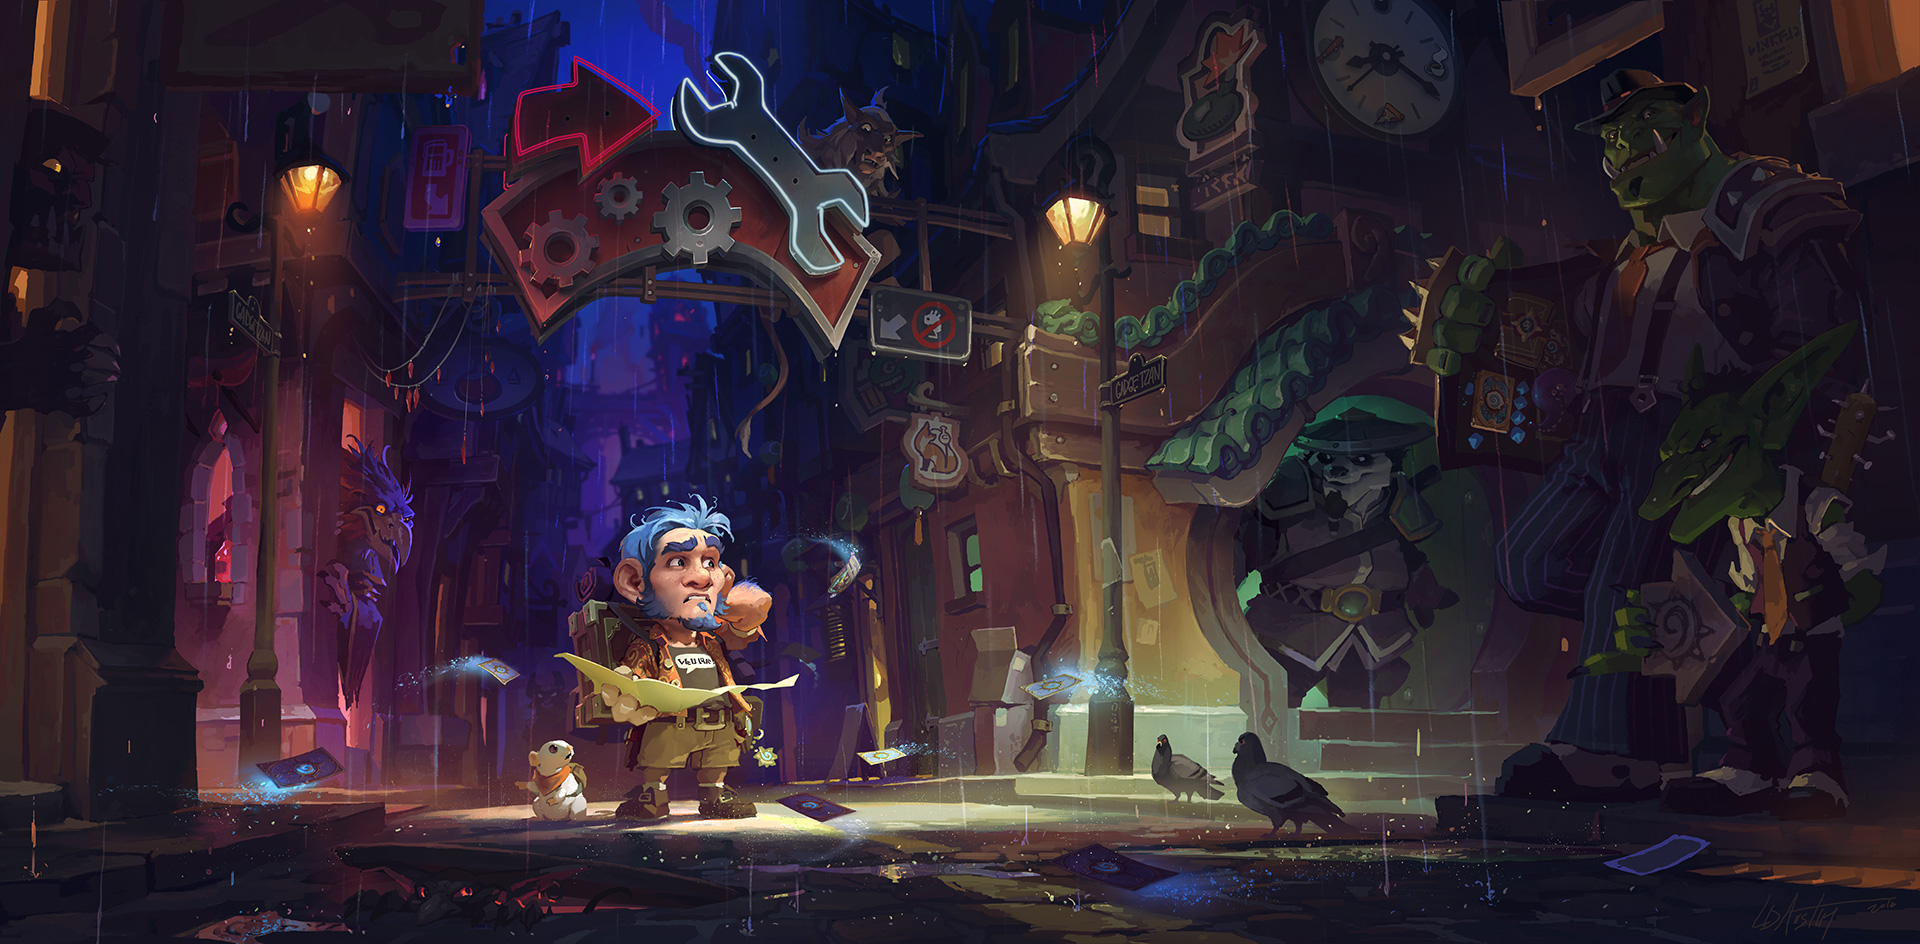 Mean Streets Of Gadgetzan Hearthstone Expansion